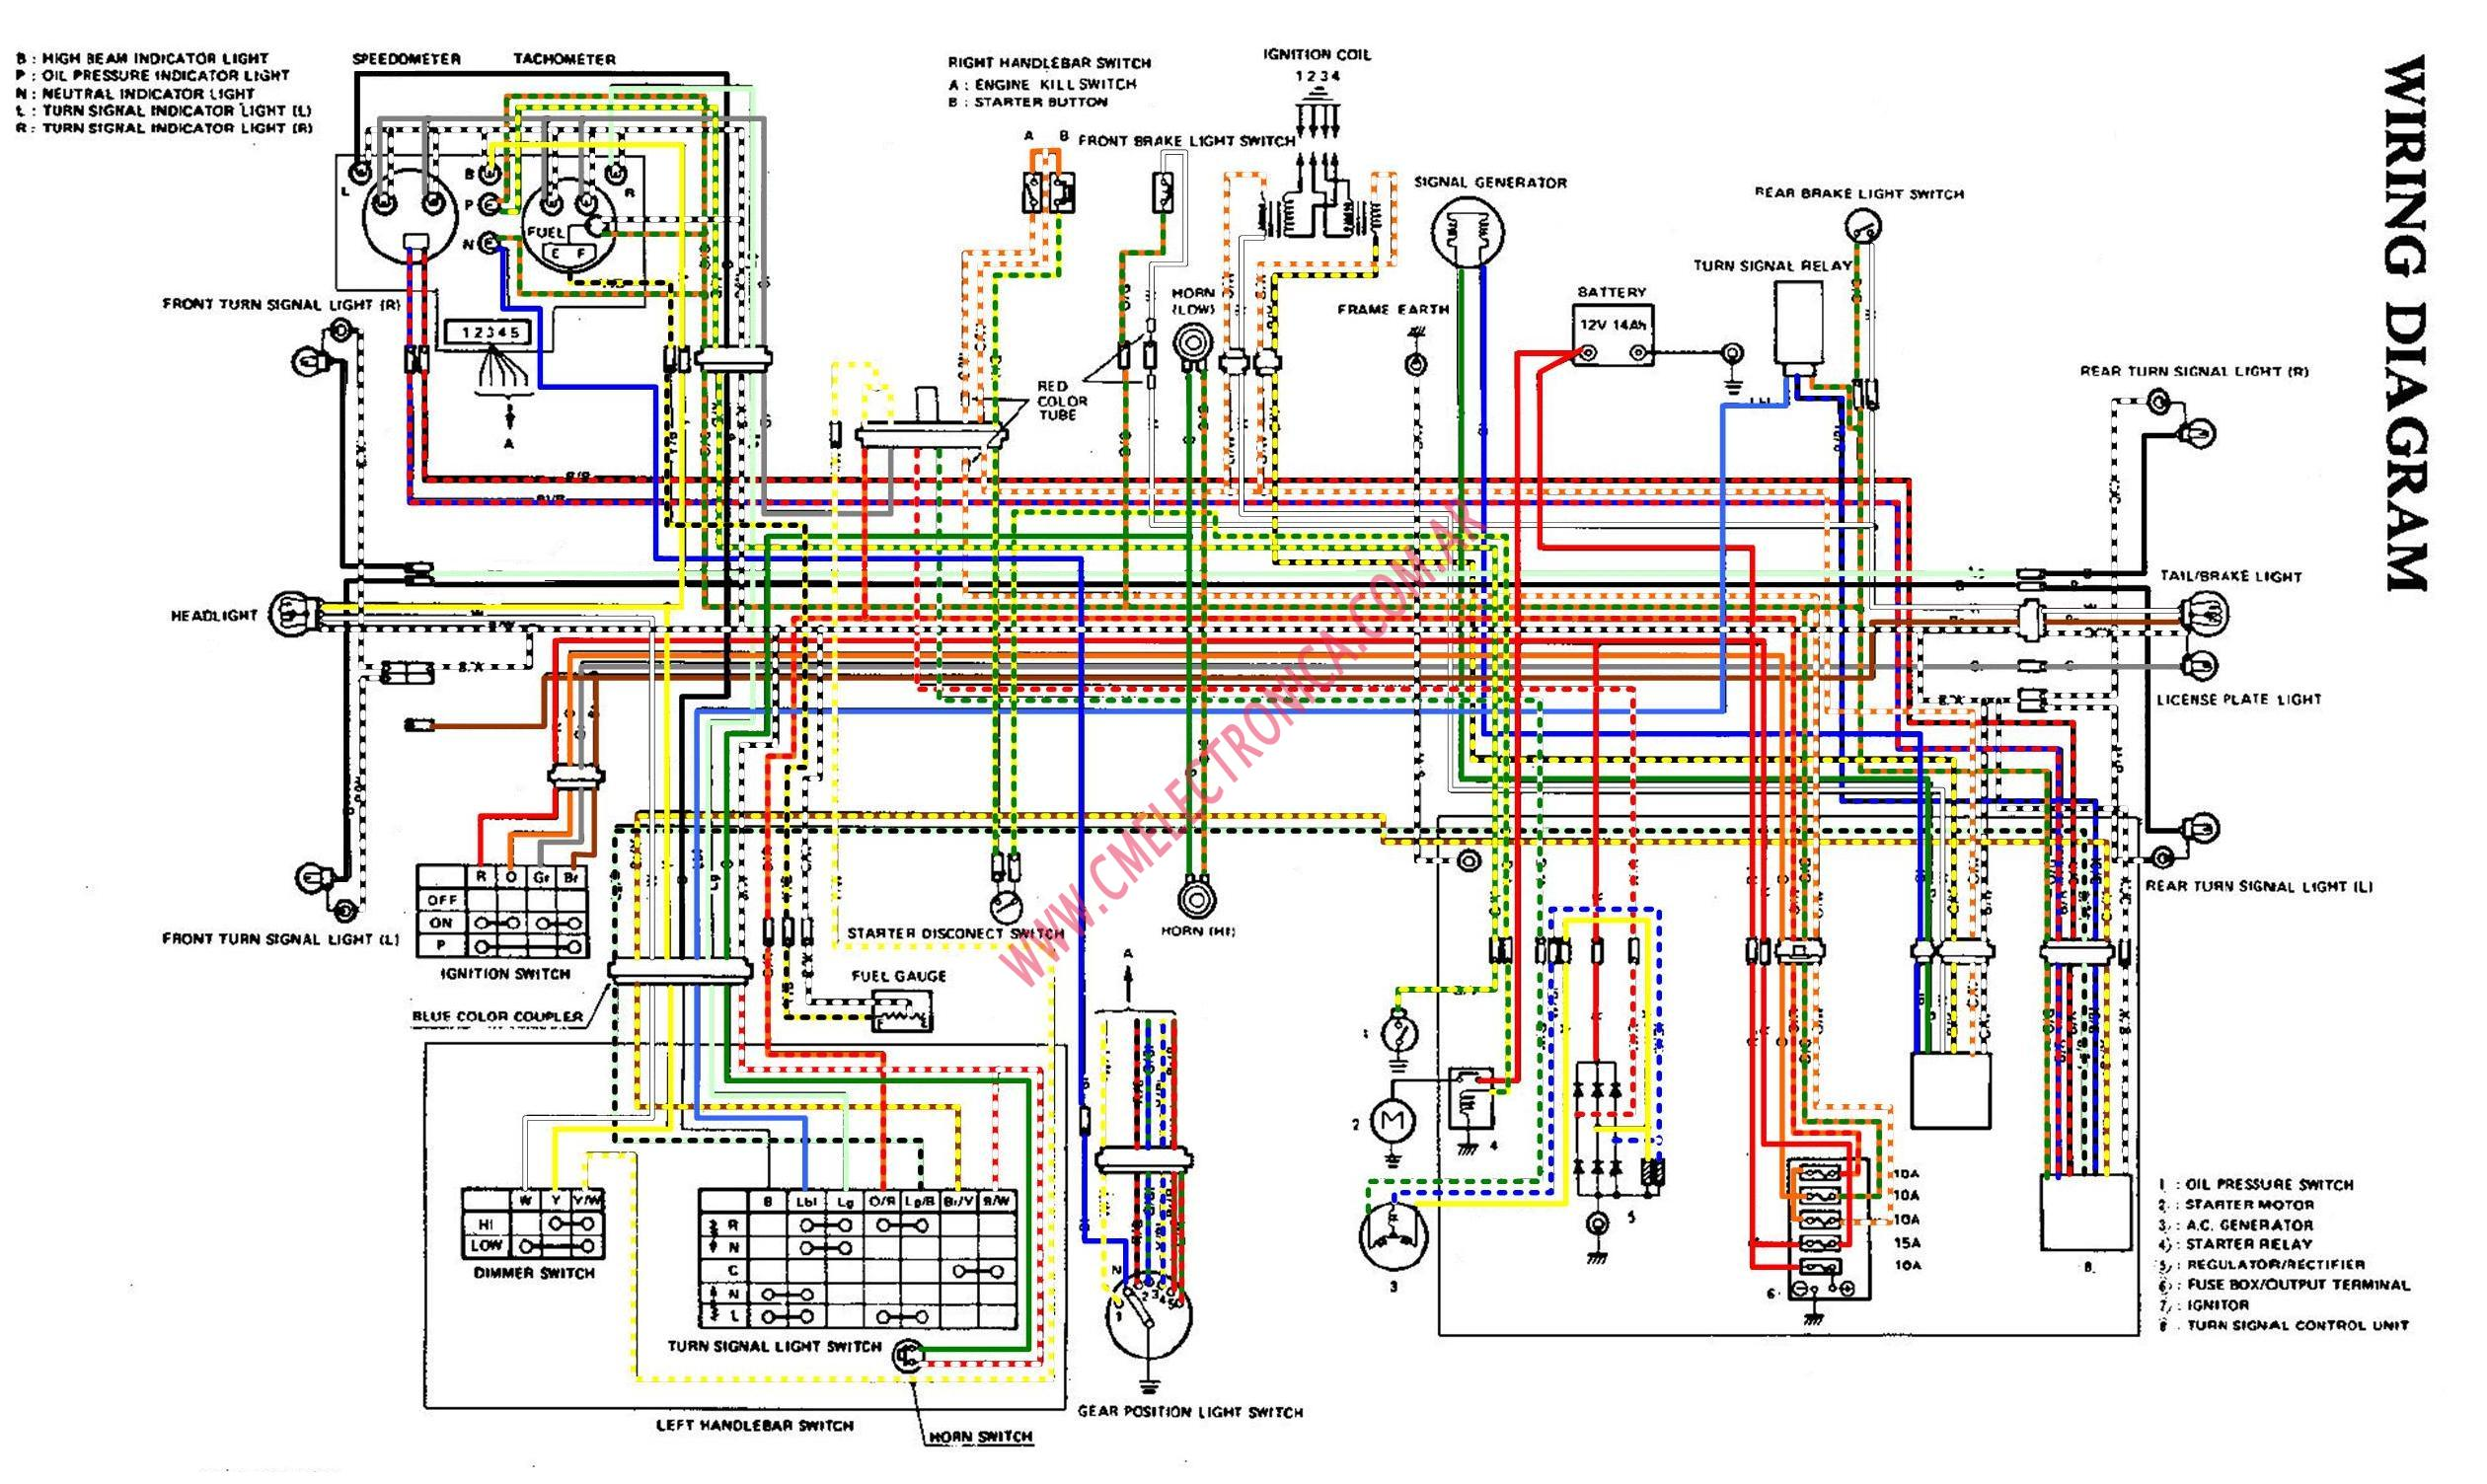 1980 Gs Wiring Diagram Another Blog About Gs450 Suzuki Gs550 32